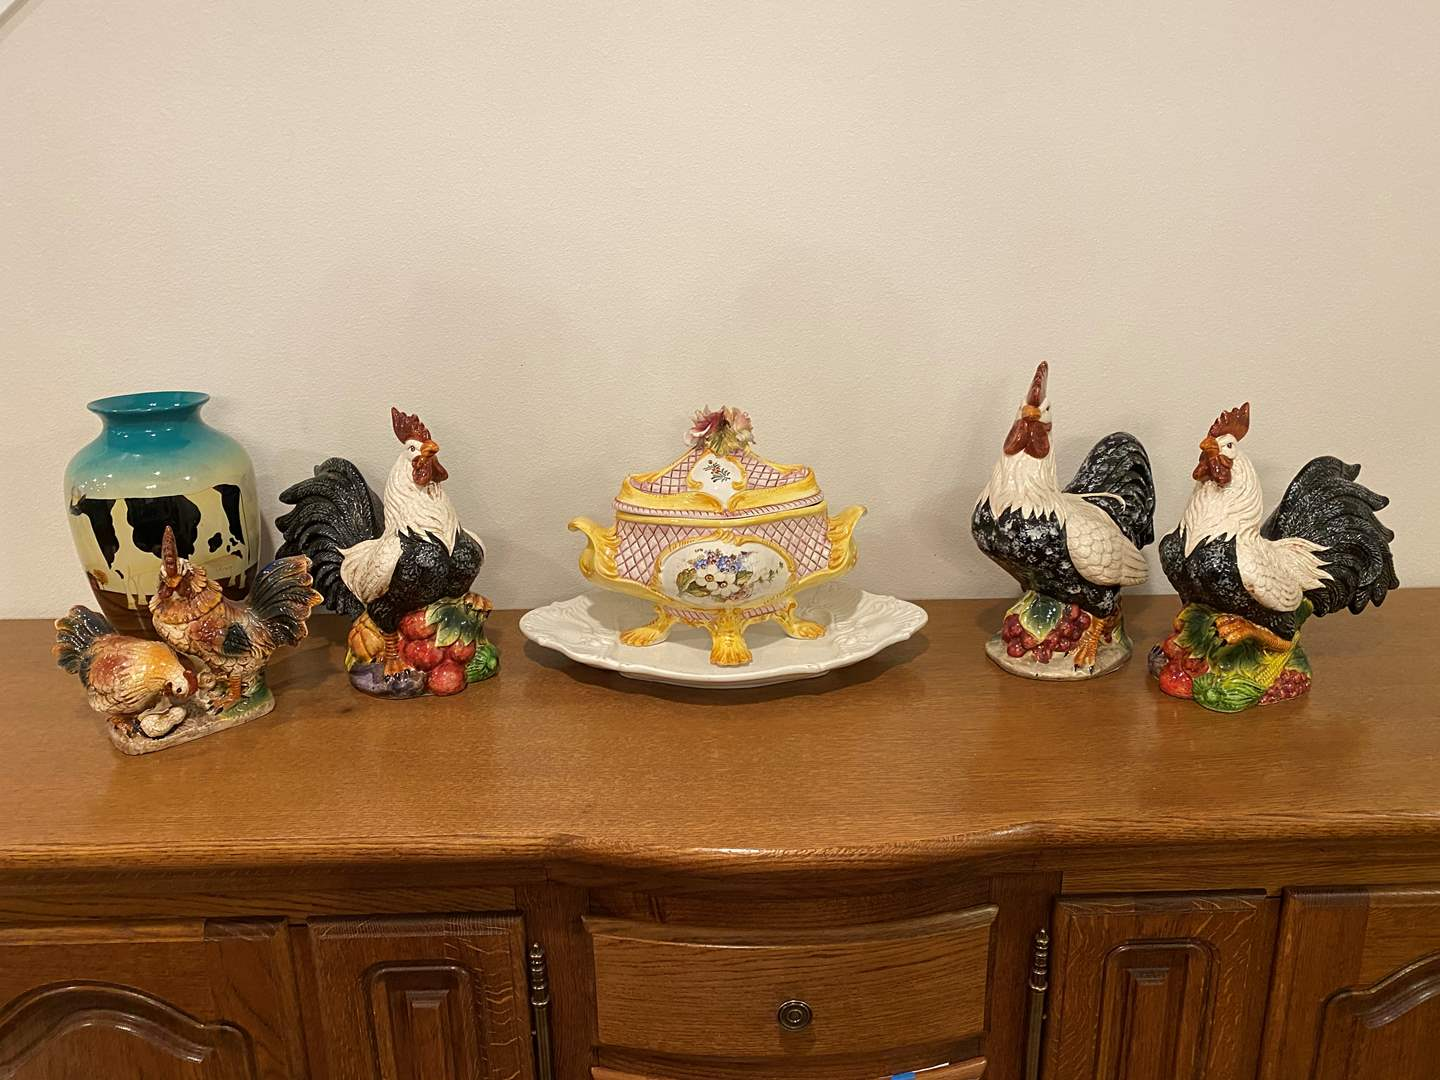 Lot # 234 - Ceramic Roosters, Capodimonte Tray w/Dish, Painted Cow Vase (main image)